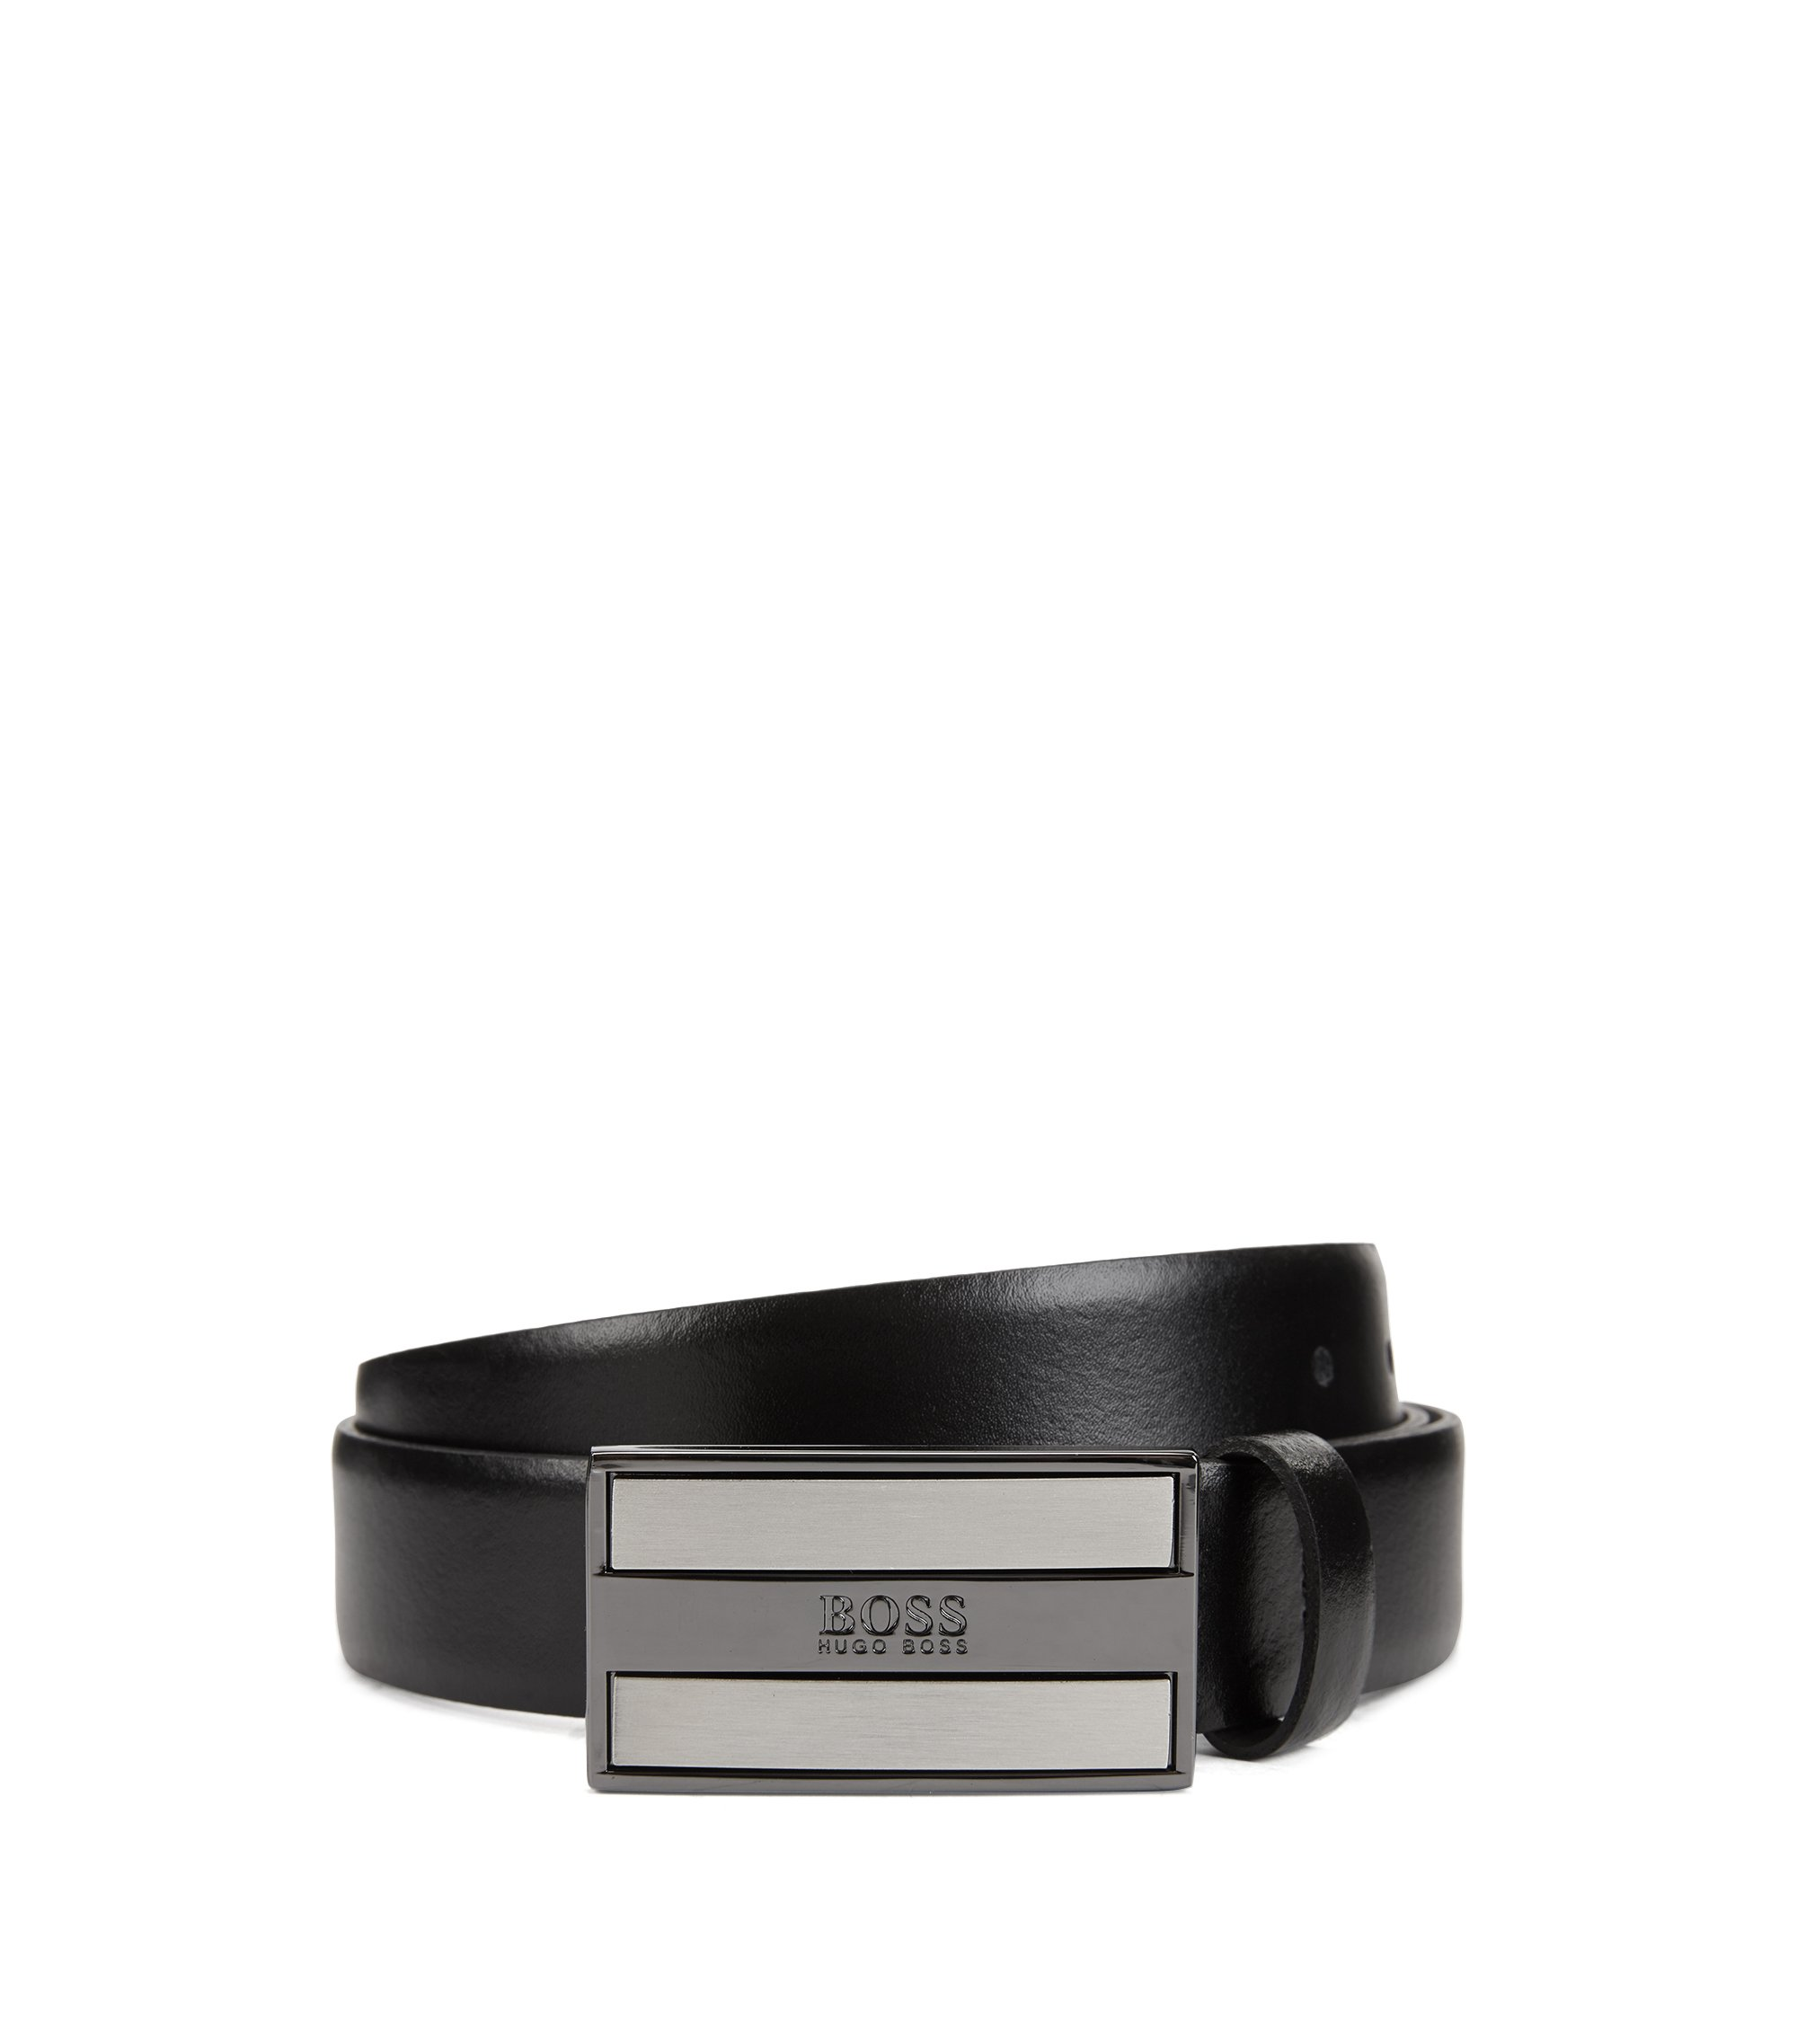 Smooth-leather belt with logo-engraved plaque buckle, Black